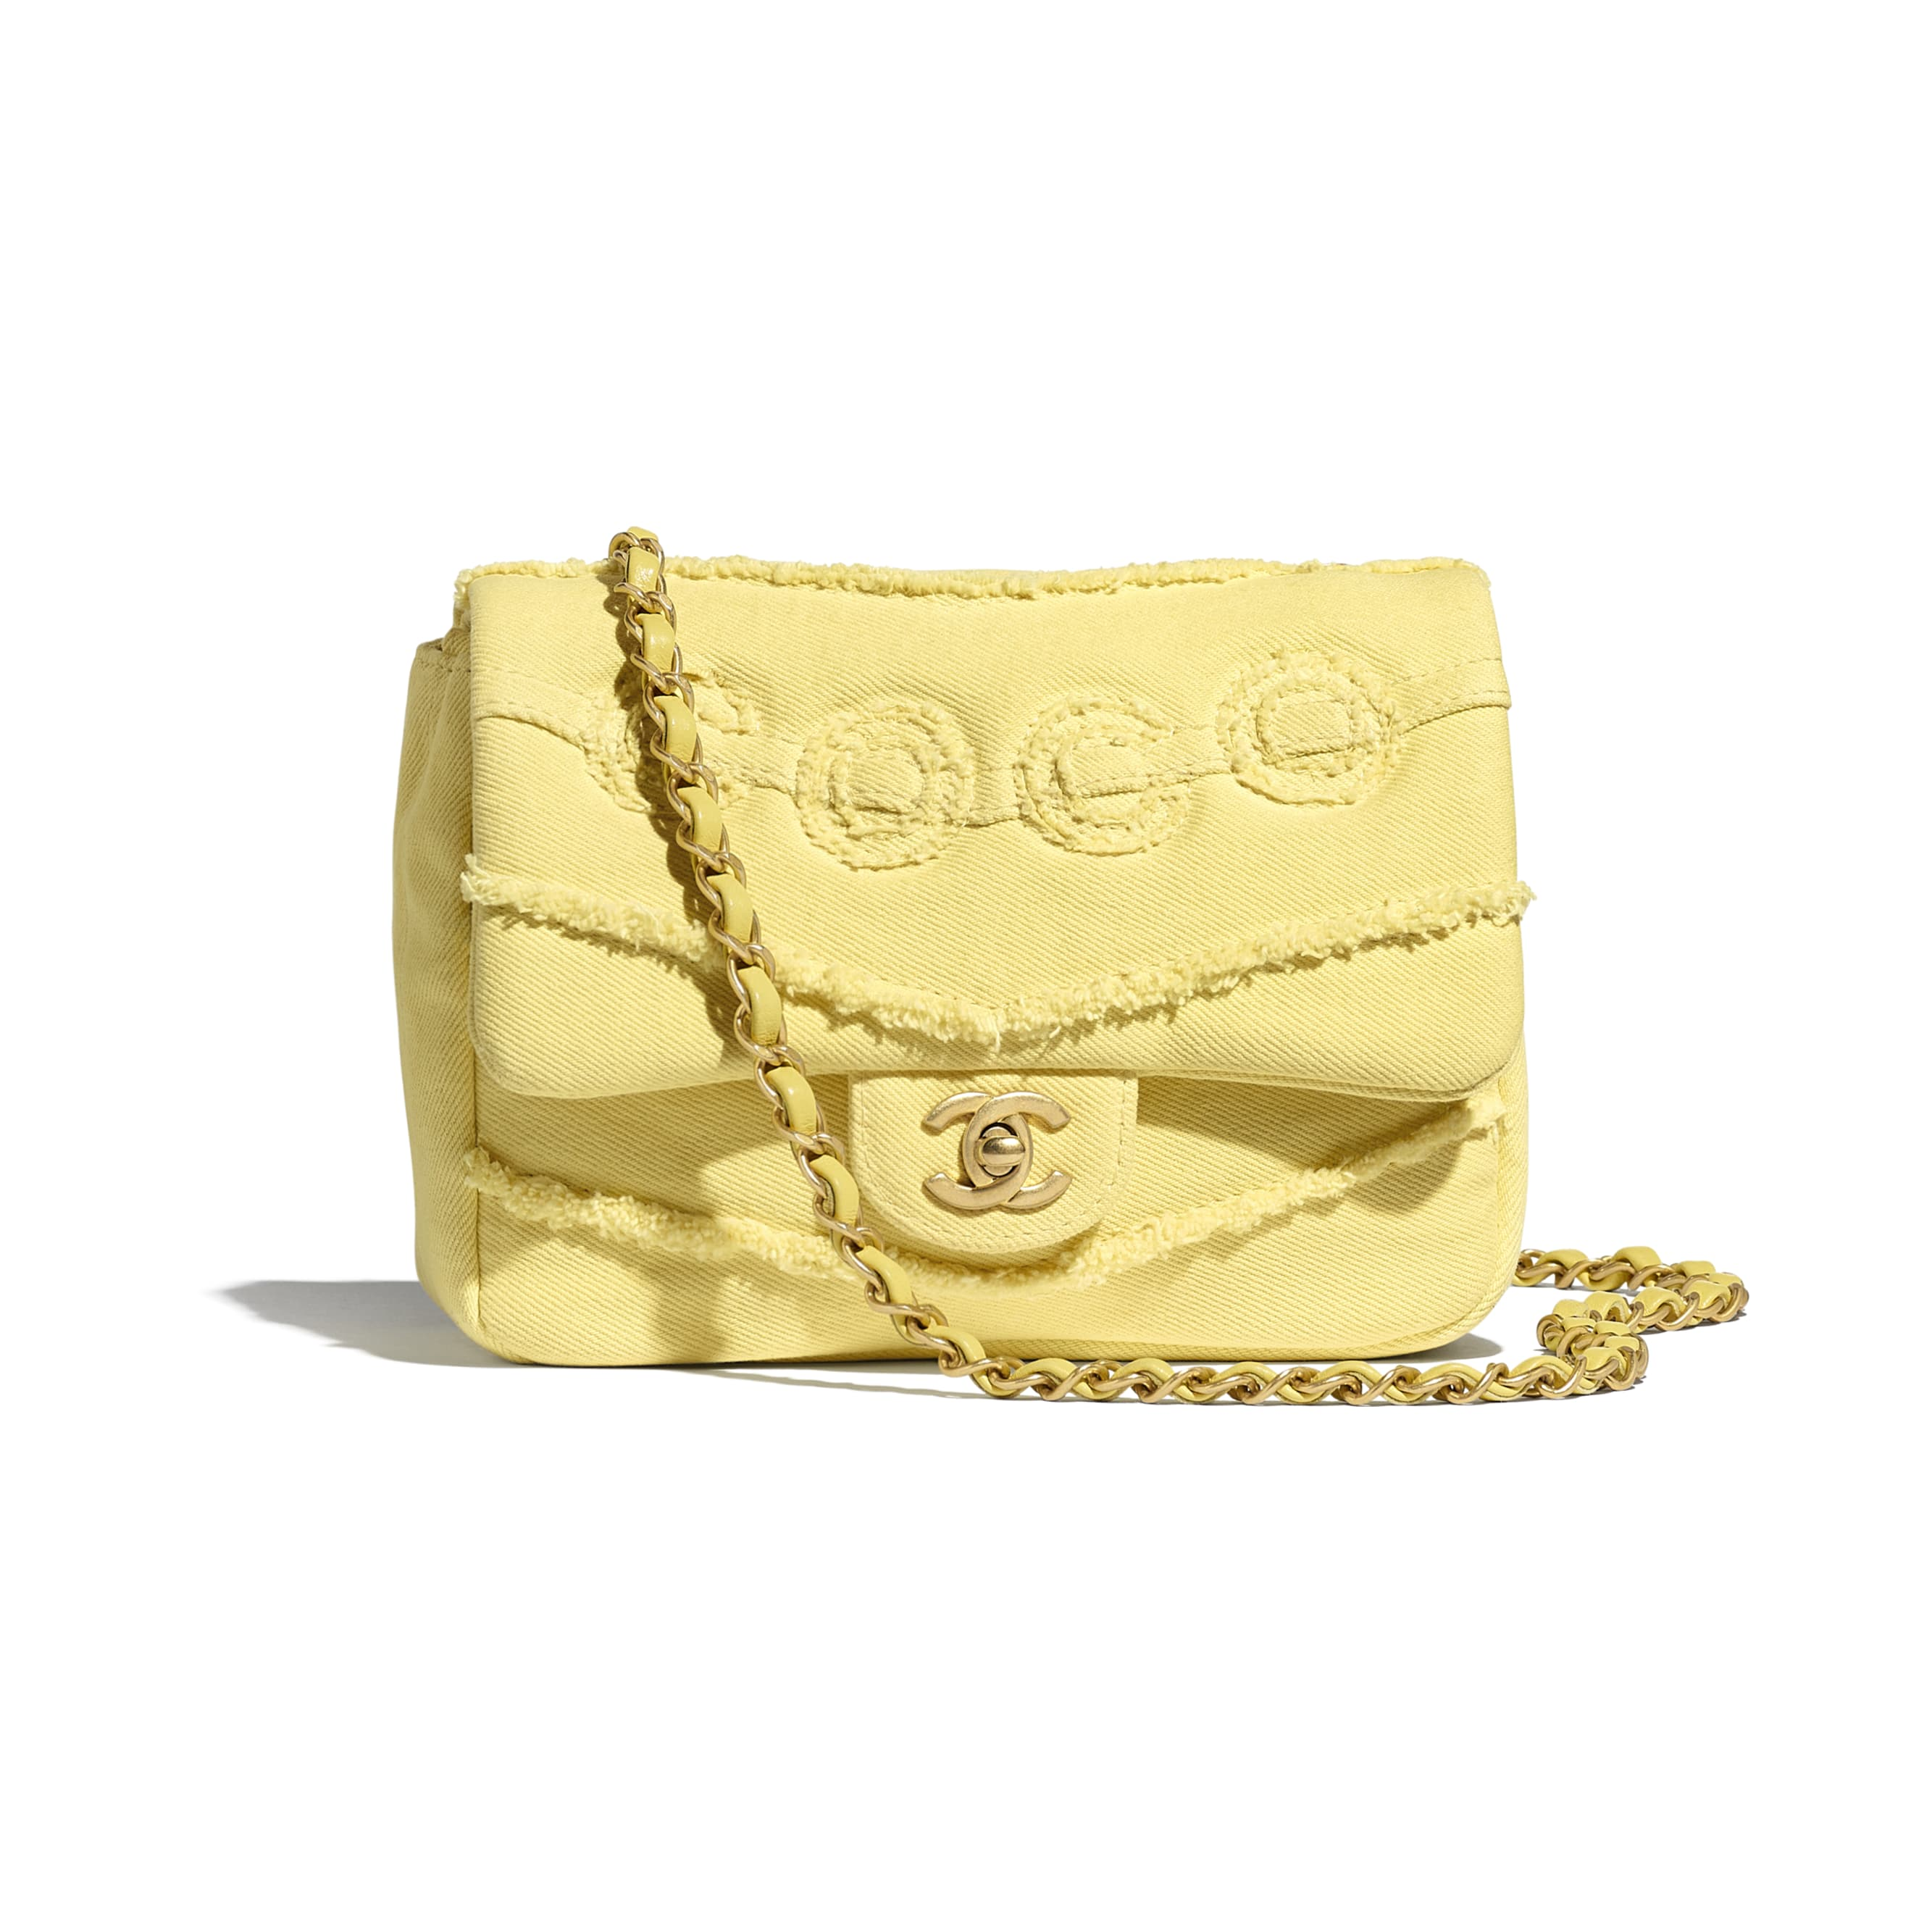 Small Flap Bag - Yellow - Denim & Gold-Tone Metal - CHANEL - Default view - see standard sized version